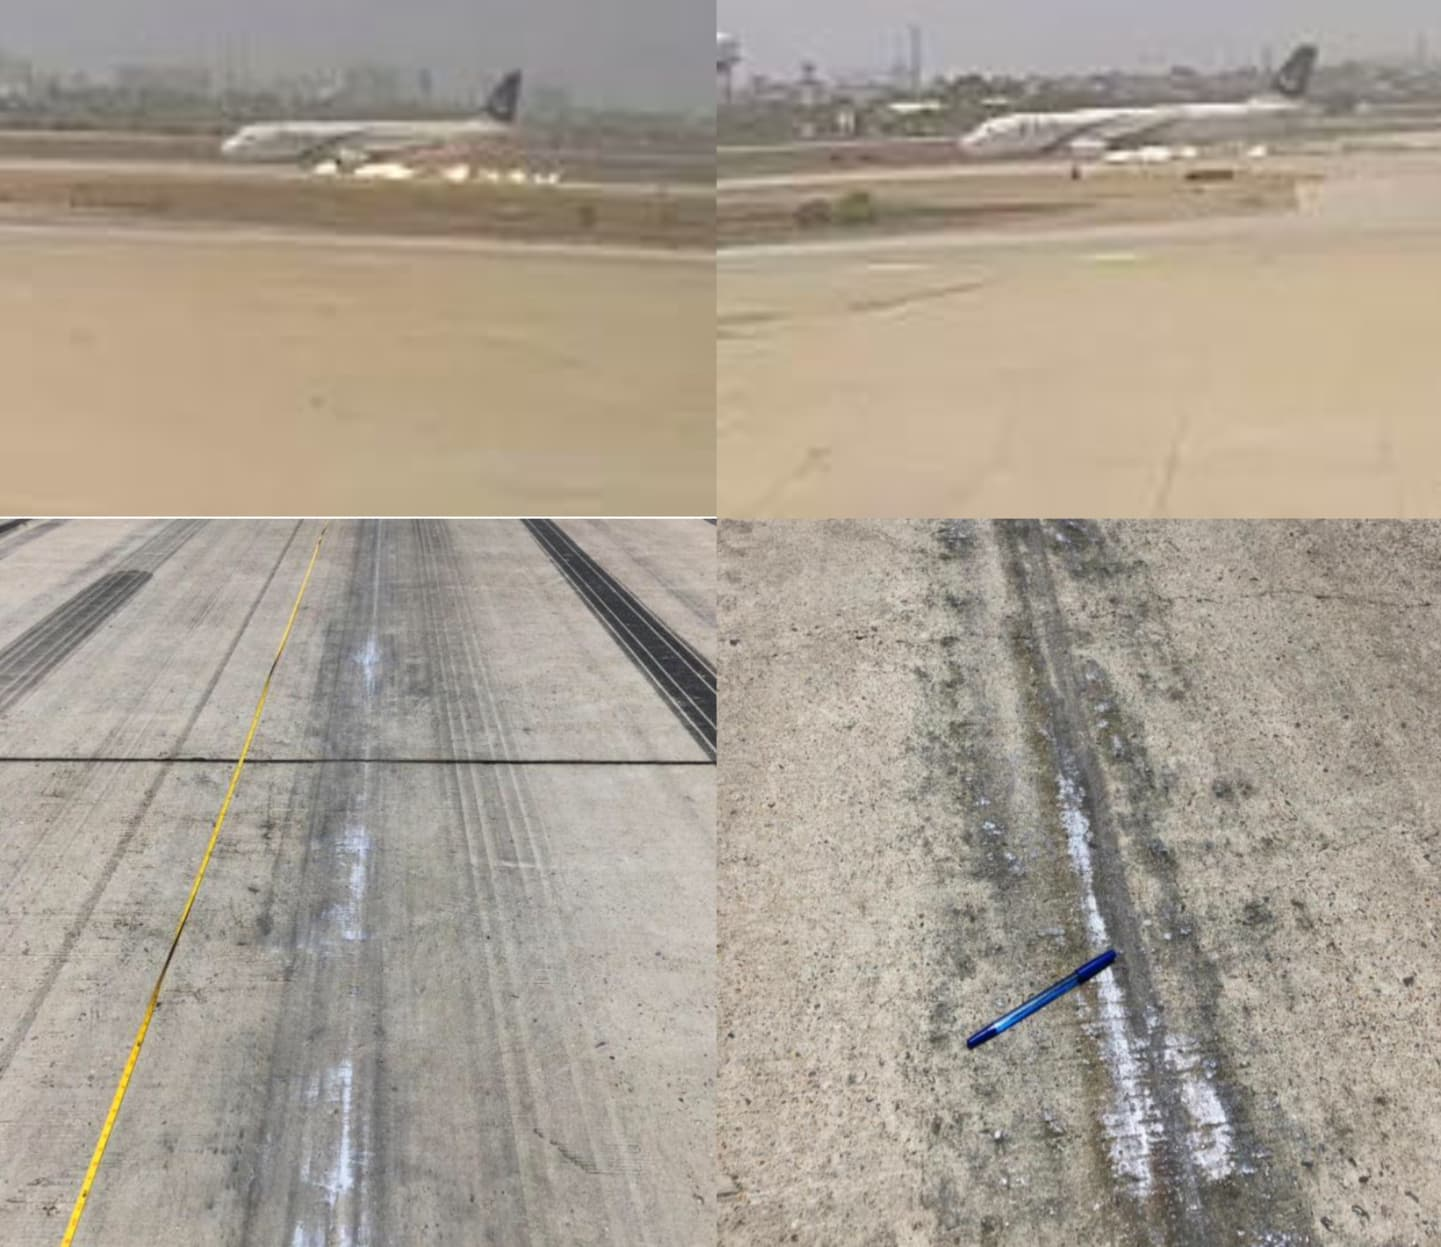 Screenshots of CCTV cameras footages, and marks on runway